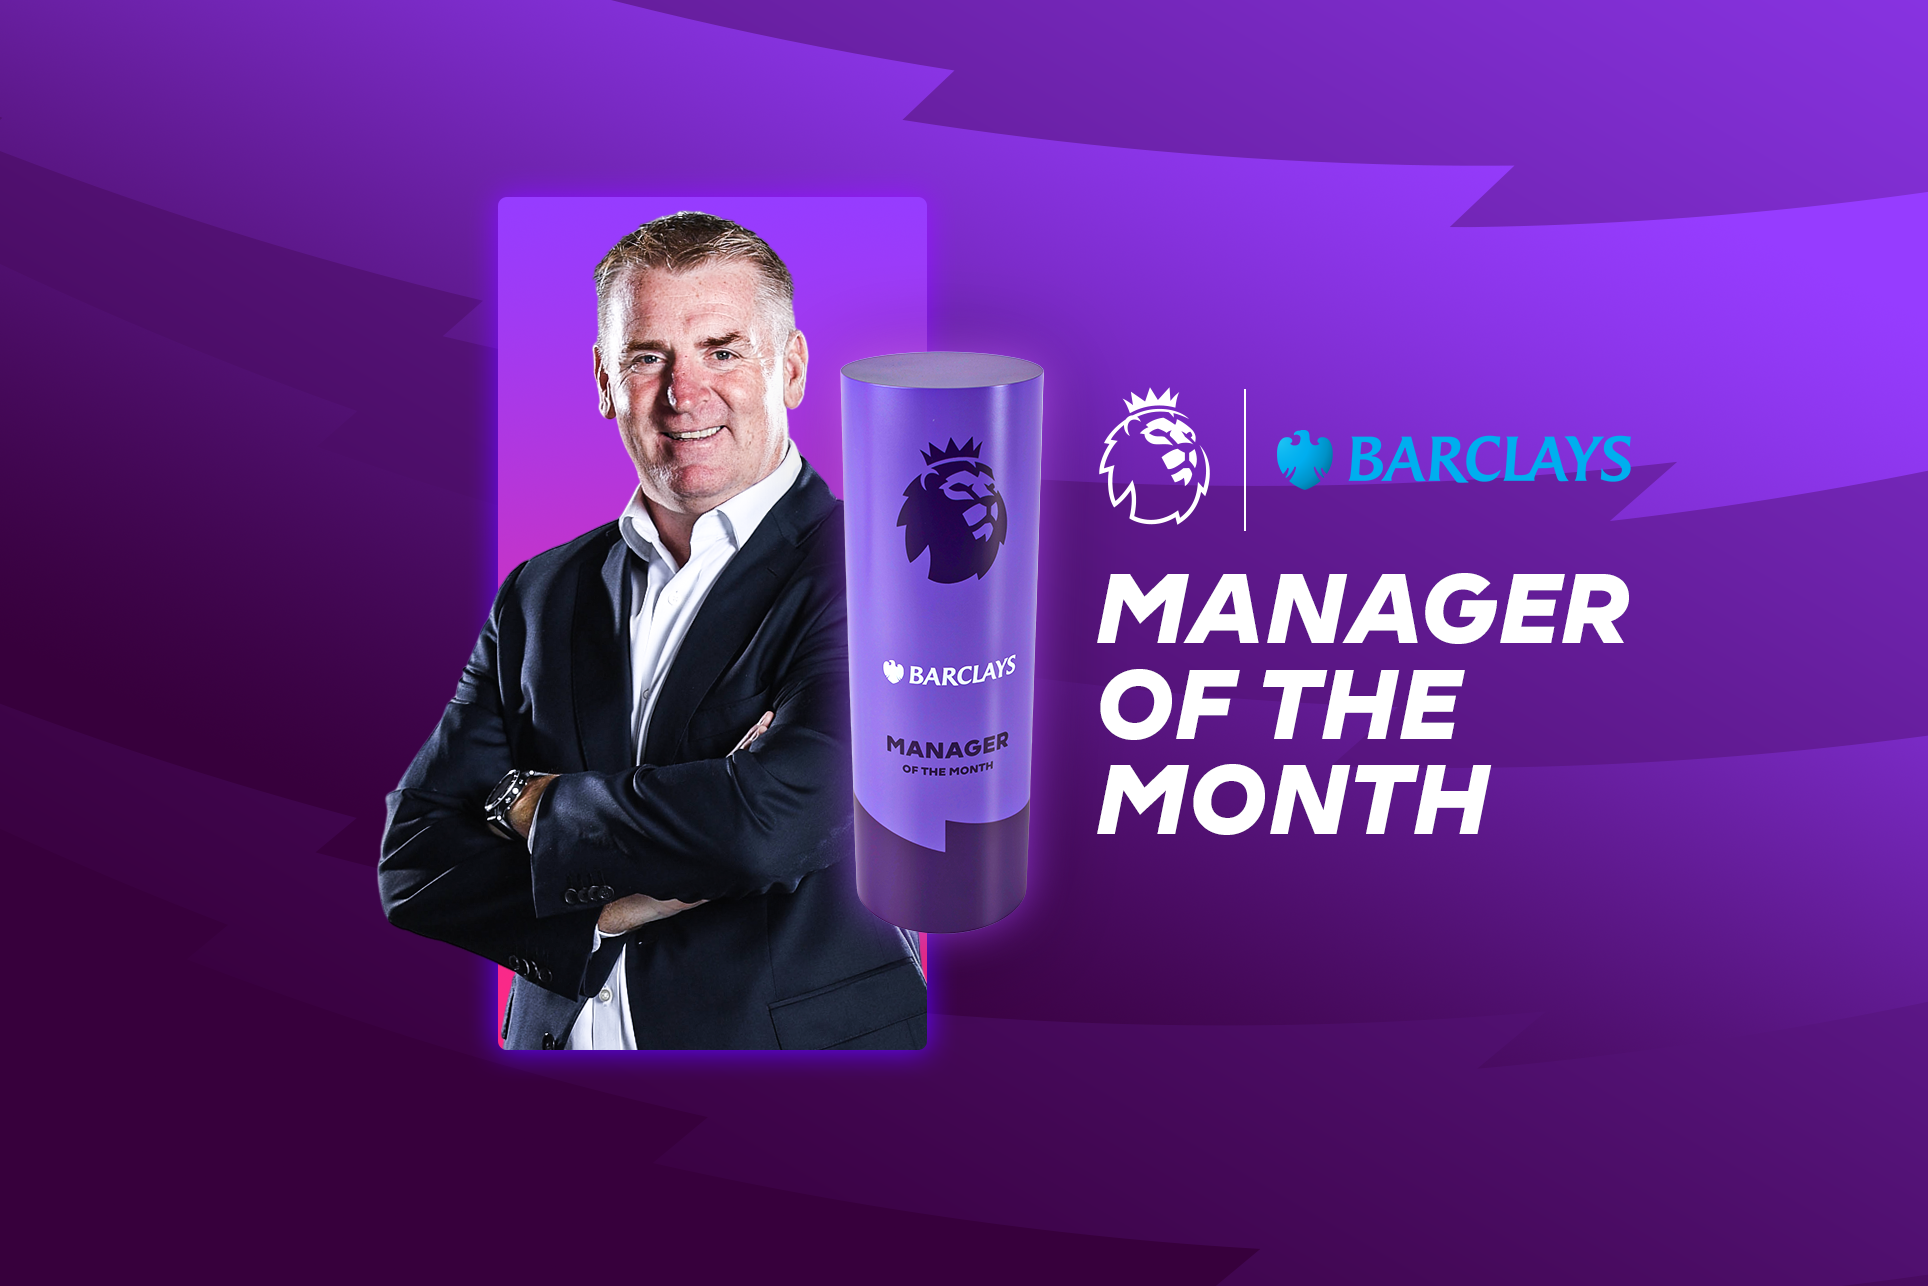 Smith earns Barclays Manager of the Month award